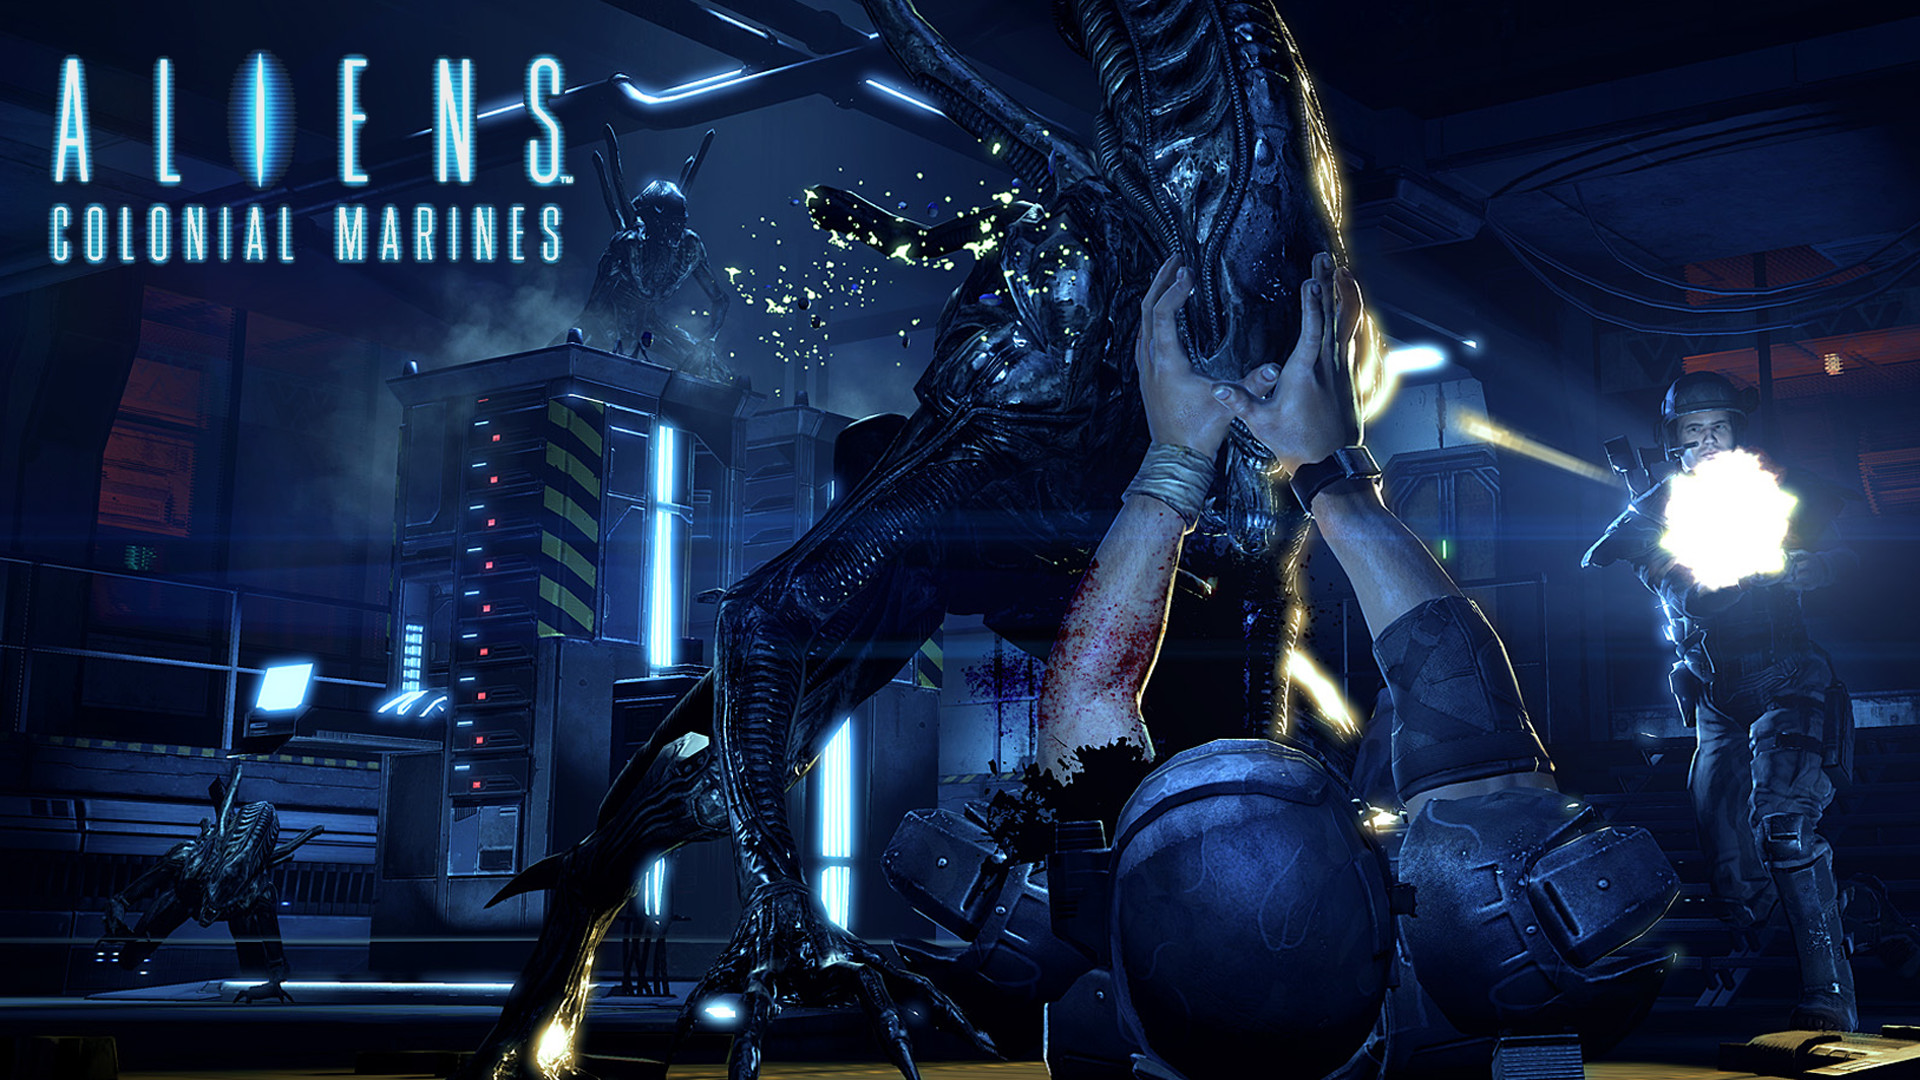 … Live Aliens Colonial Marines Wallpapers   Aliens Colonial Marines  Wallpapers Collection …